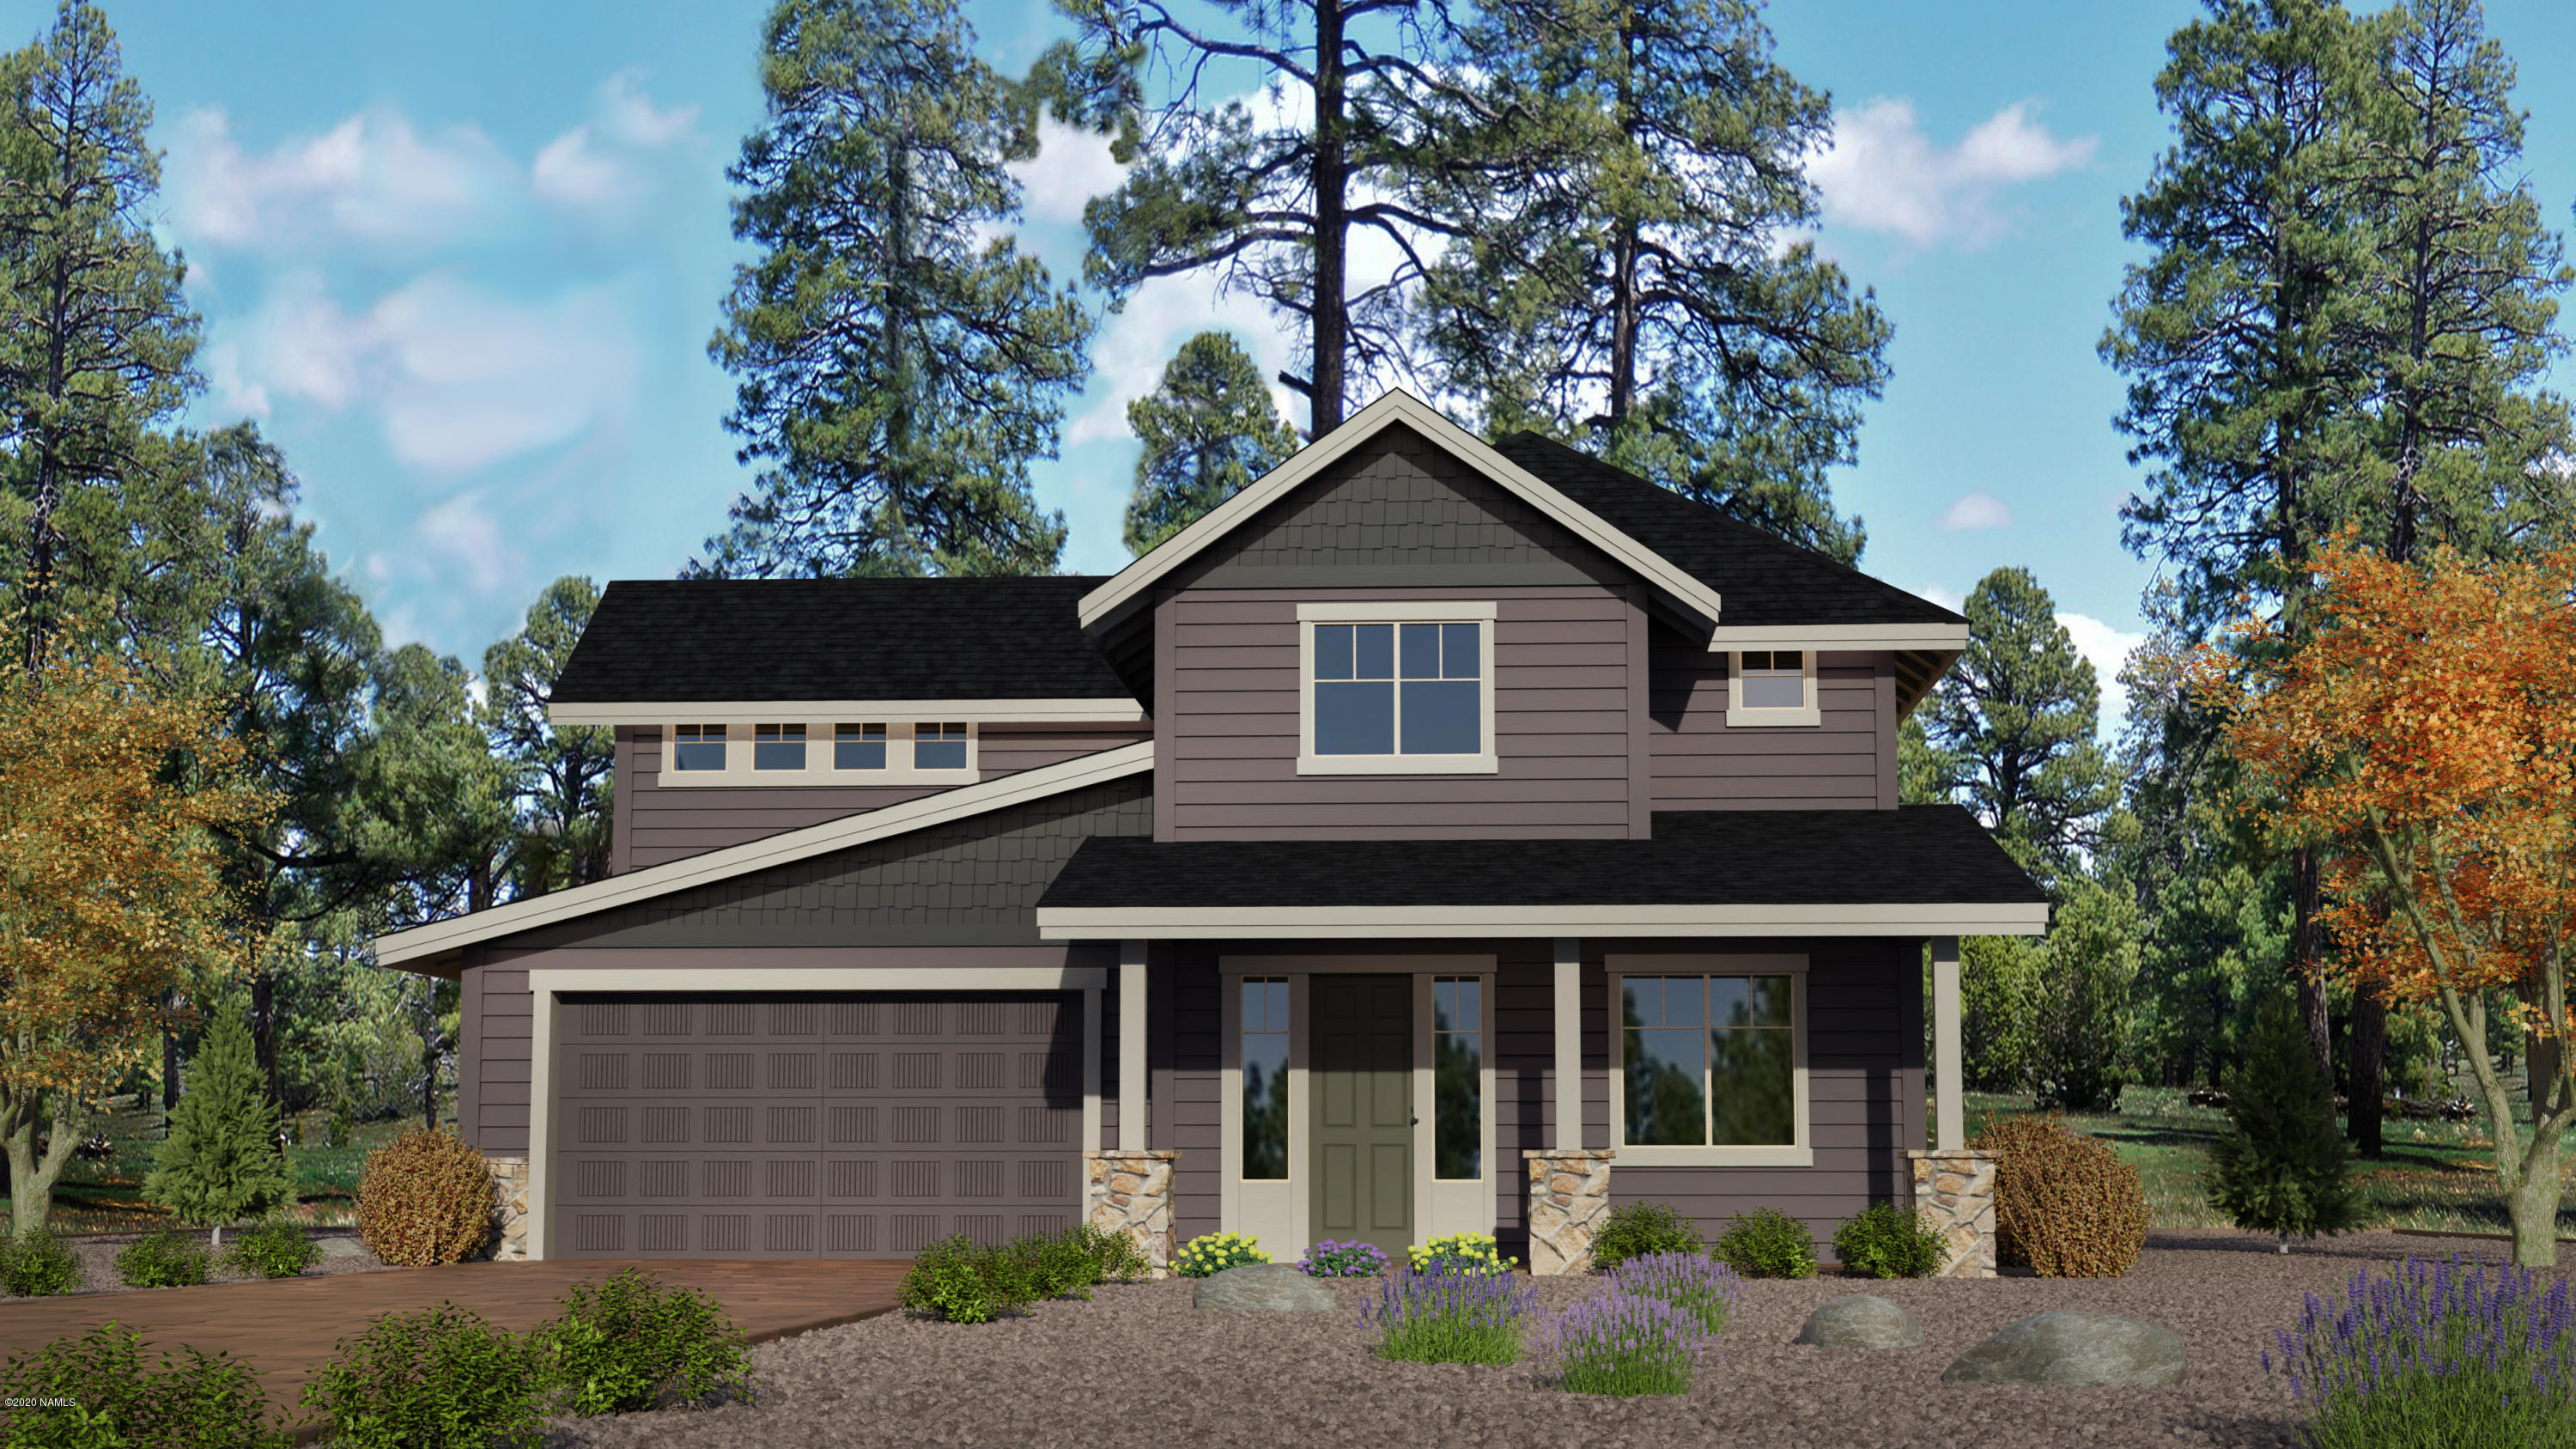 Photo of 8882 Arroyo Trail, Flagstaff, AZ 86004